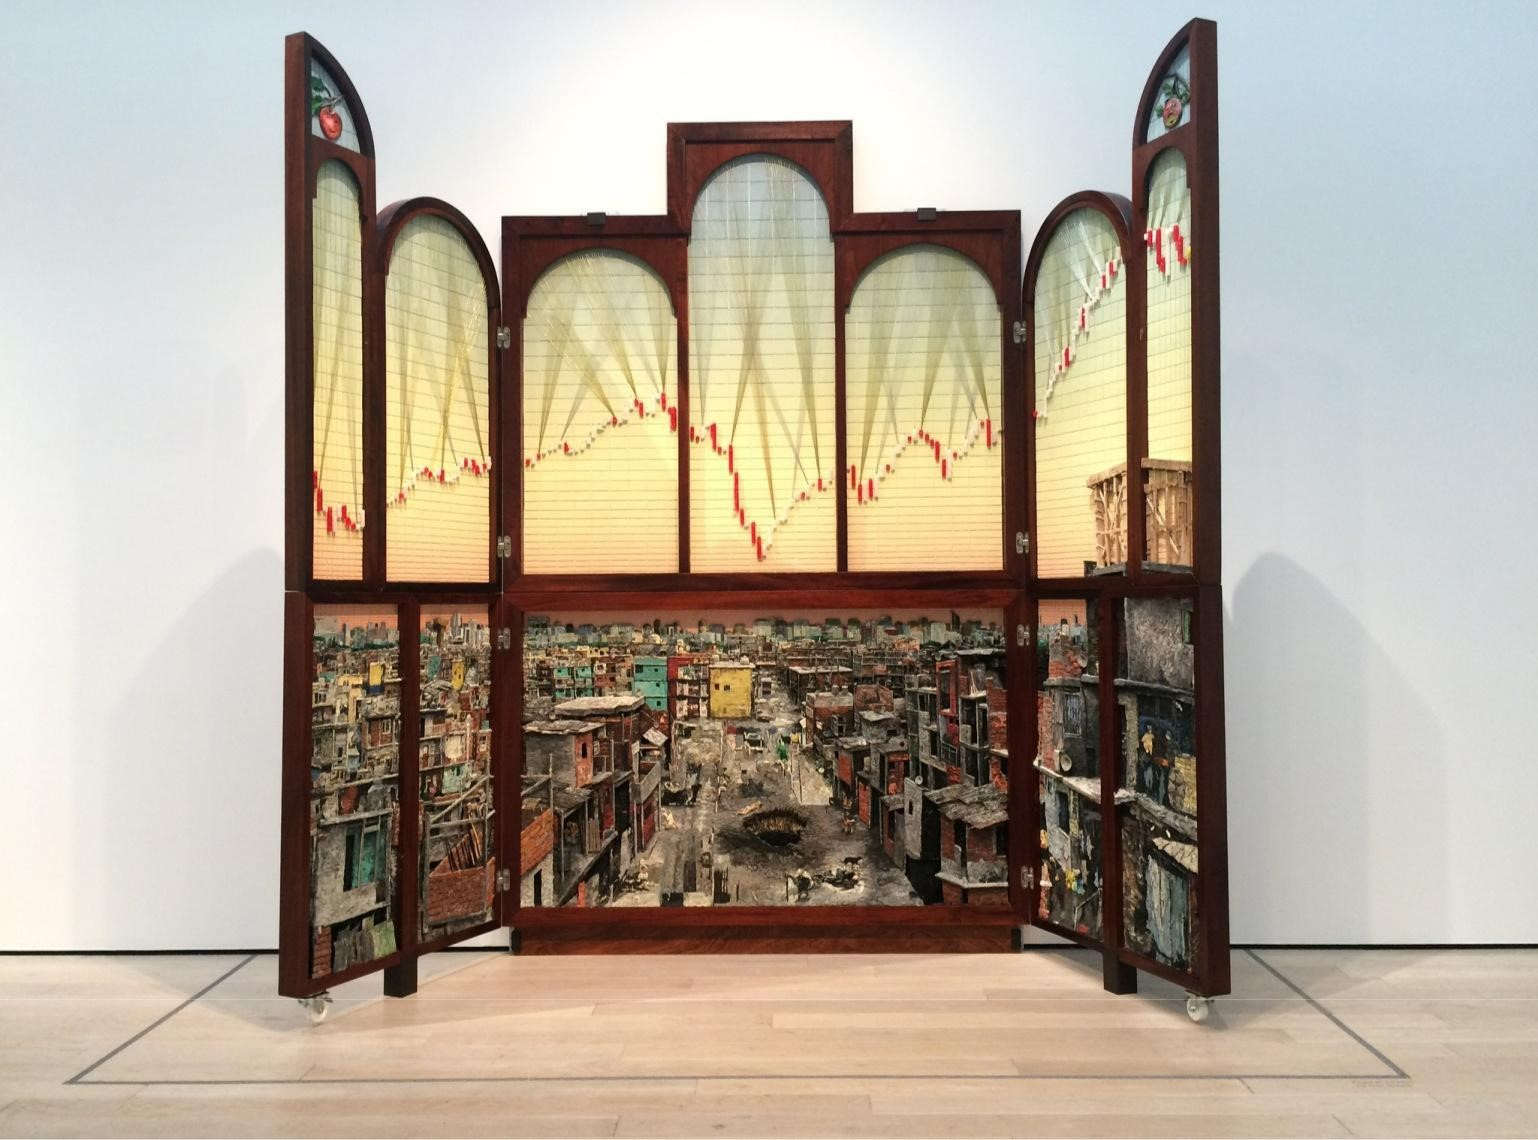 """""""Políptico de Buenos Aires"""" (2014/2016), by the collective Mondongo, shows the disparities of wealth in the Argentine capital. (Carolina A. Miranda / Los Angeles Times)  The exhibition, as Ramirez observes, is not a strict chronological survey of important works by important artists. Instead, it functions more as """"a constellation"""" — """"putting works in dialogue with each other across generations and countries"""" in ways that connect on the level of ideas or materials.  """"We wanted to see what work talked to other work,"""" Noriega adds. """"We saw work talking to work from other countries — even if they might be 50 years apart.""""  A pair of wall-hangings by Raphael Montañez Ortiz, a U.S. artist of mixed Caribbean and Mexican heritage who made some of his key works in the 1960s, for example, hang adjacent to an installation by Colombian artist Leyla Cardenas, who has been active for just over a decade. Both pry apart domestic settings to examine their psychological and historical roots.  Ortiz's pieces, which he labels """"Archaeological Finds,"""" consist of dismembered furnishings that he pries apart in violent acts. Cardenas uses elements of old architecture to conduct what amounts to archaeological digs.  Taking slivers of a decaying 19th century house from Bogotá, she's peeled away layers of wallpaper to reveal decorative elements dating back to the early republic. The structure was made of wood and adobe, in the Spanish style, but the wallpaper added after independence is English. It marks a moment in which Colombia was searching for a new identity apart from Spain.  All of this she presents as a 4-inch-wide slice of a room that looks like a laboratory specimen on an architectural scale.  """"From a piece of the room, you can reconstruct not just the room, but the house and the city and the country and what was going on at any given time,"""" she says. """"It fits with the show, which offers a transversal look at the concept of home."""""""